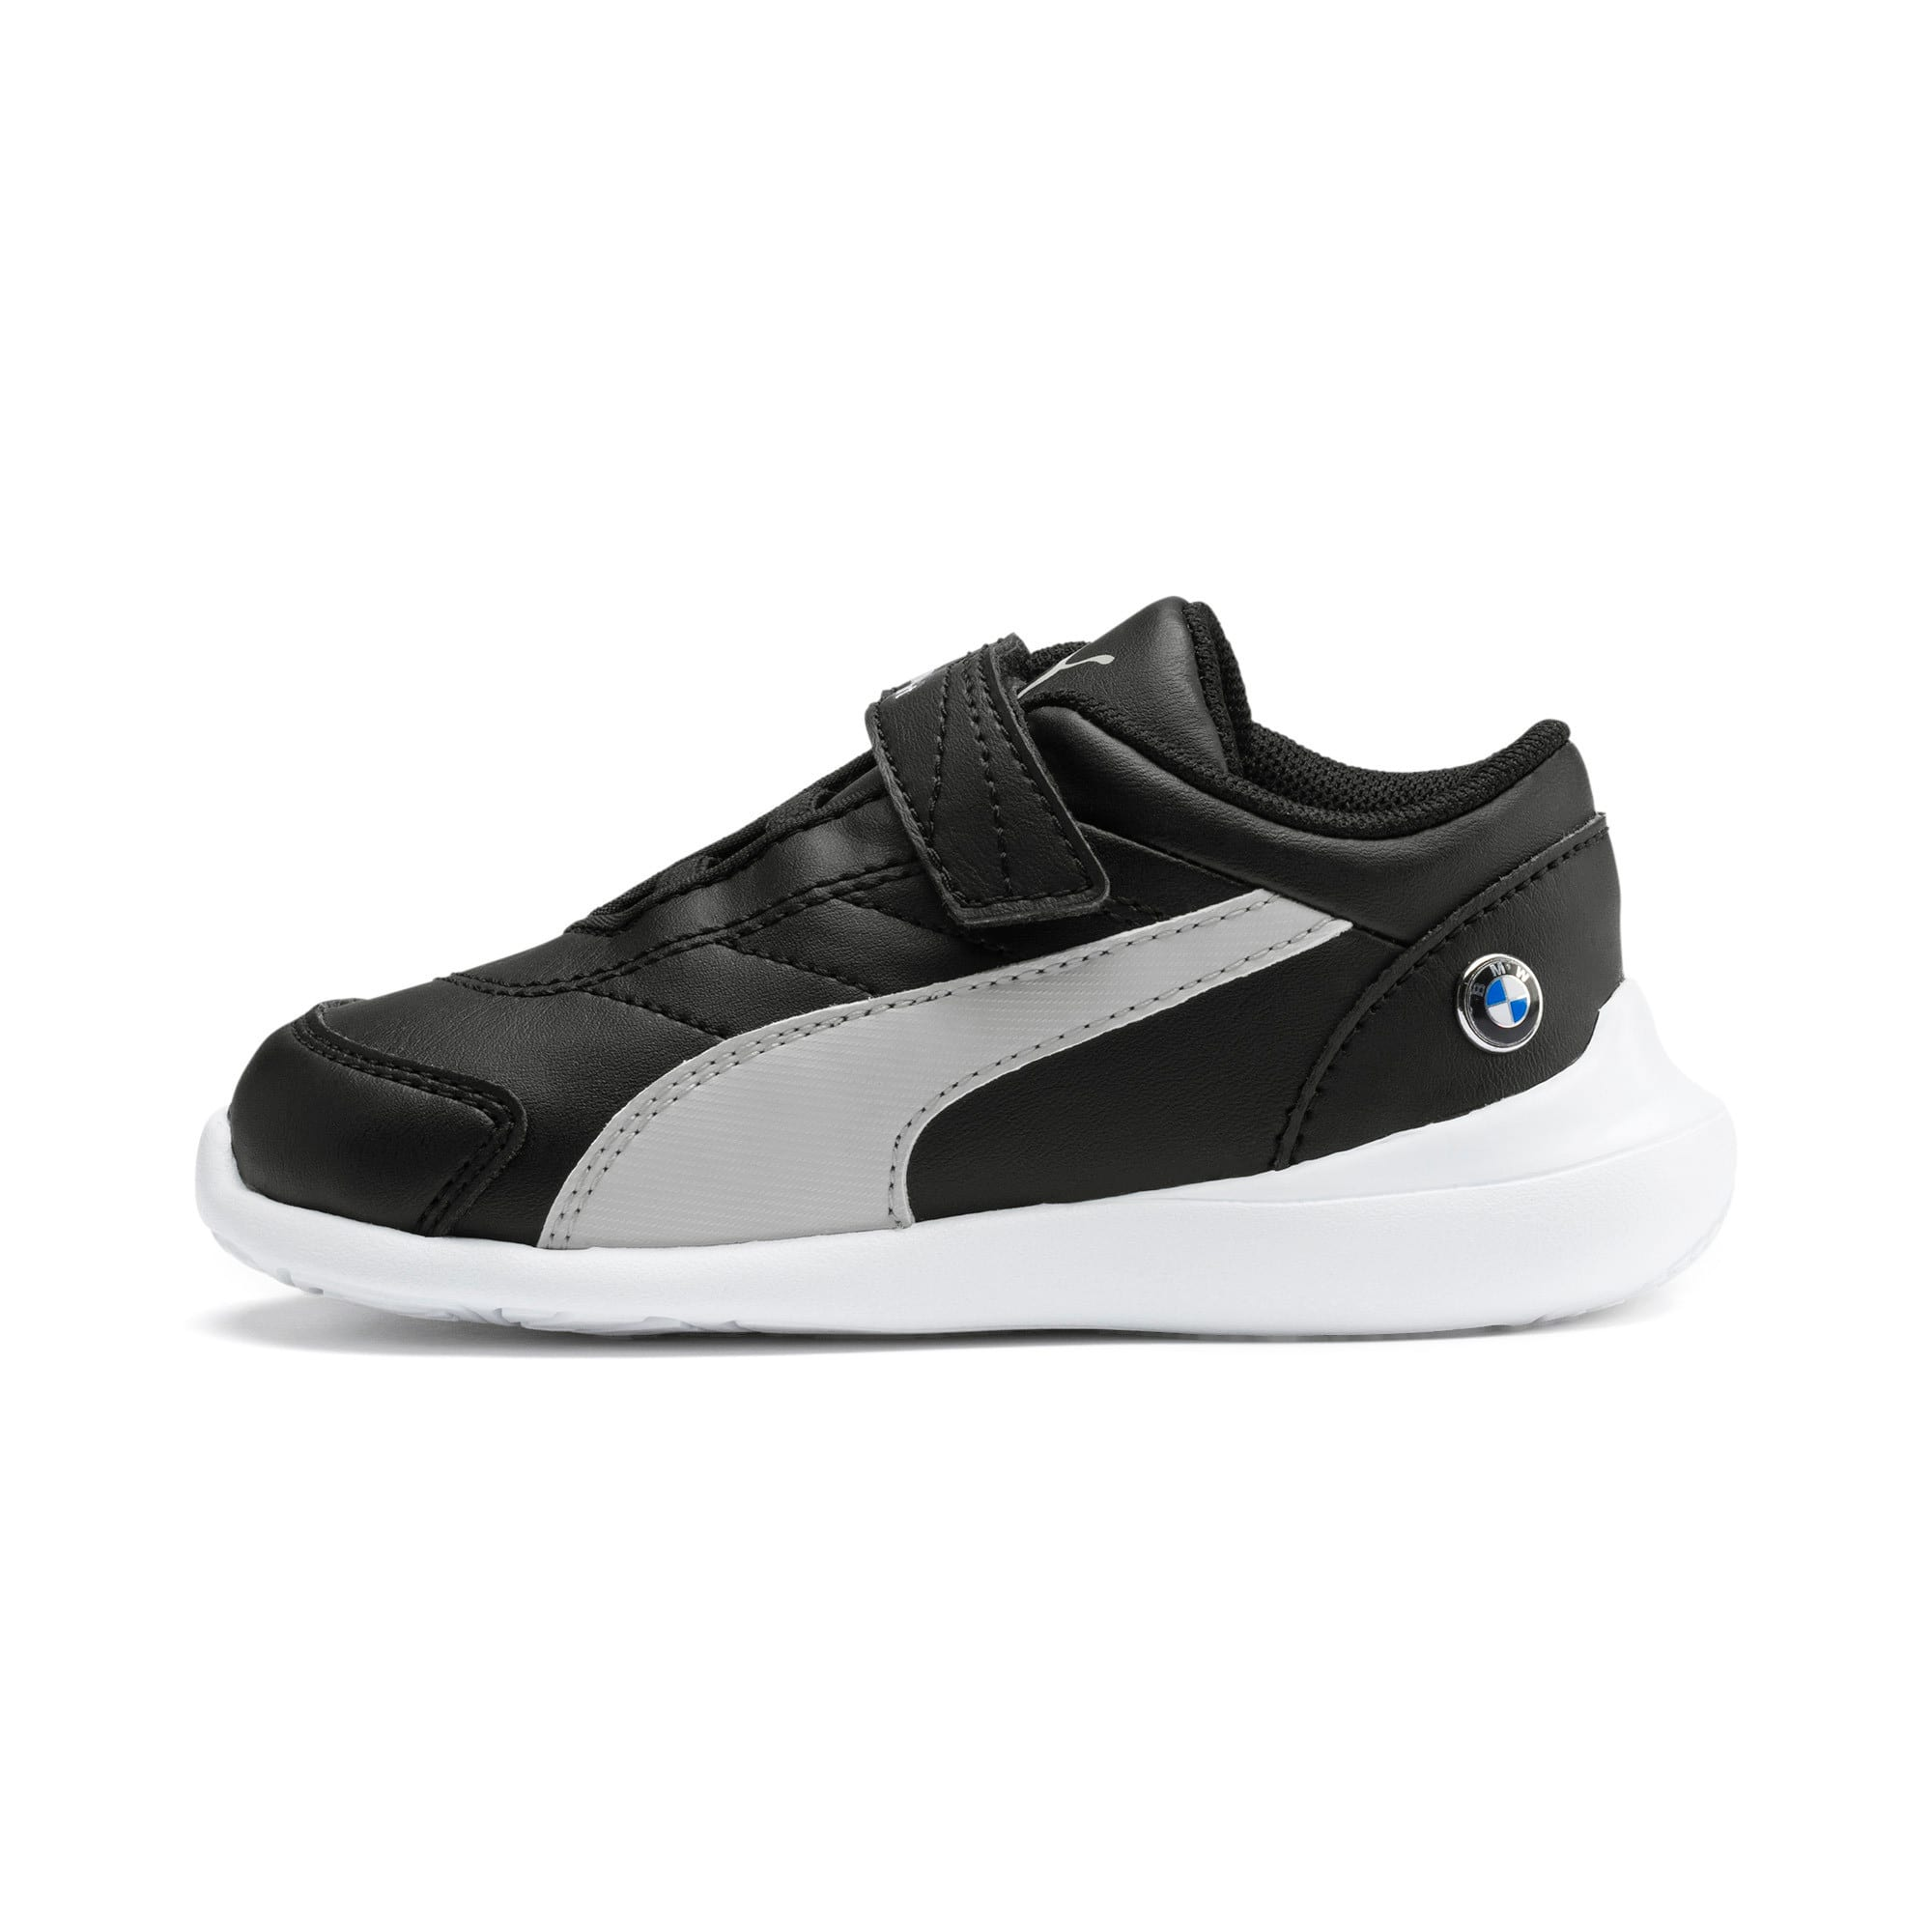 Thumbnail 1 of BMW M Motorsport Kart Cat III Toddler Shoes, Puma Black-Gray Violet, medium